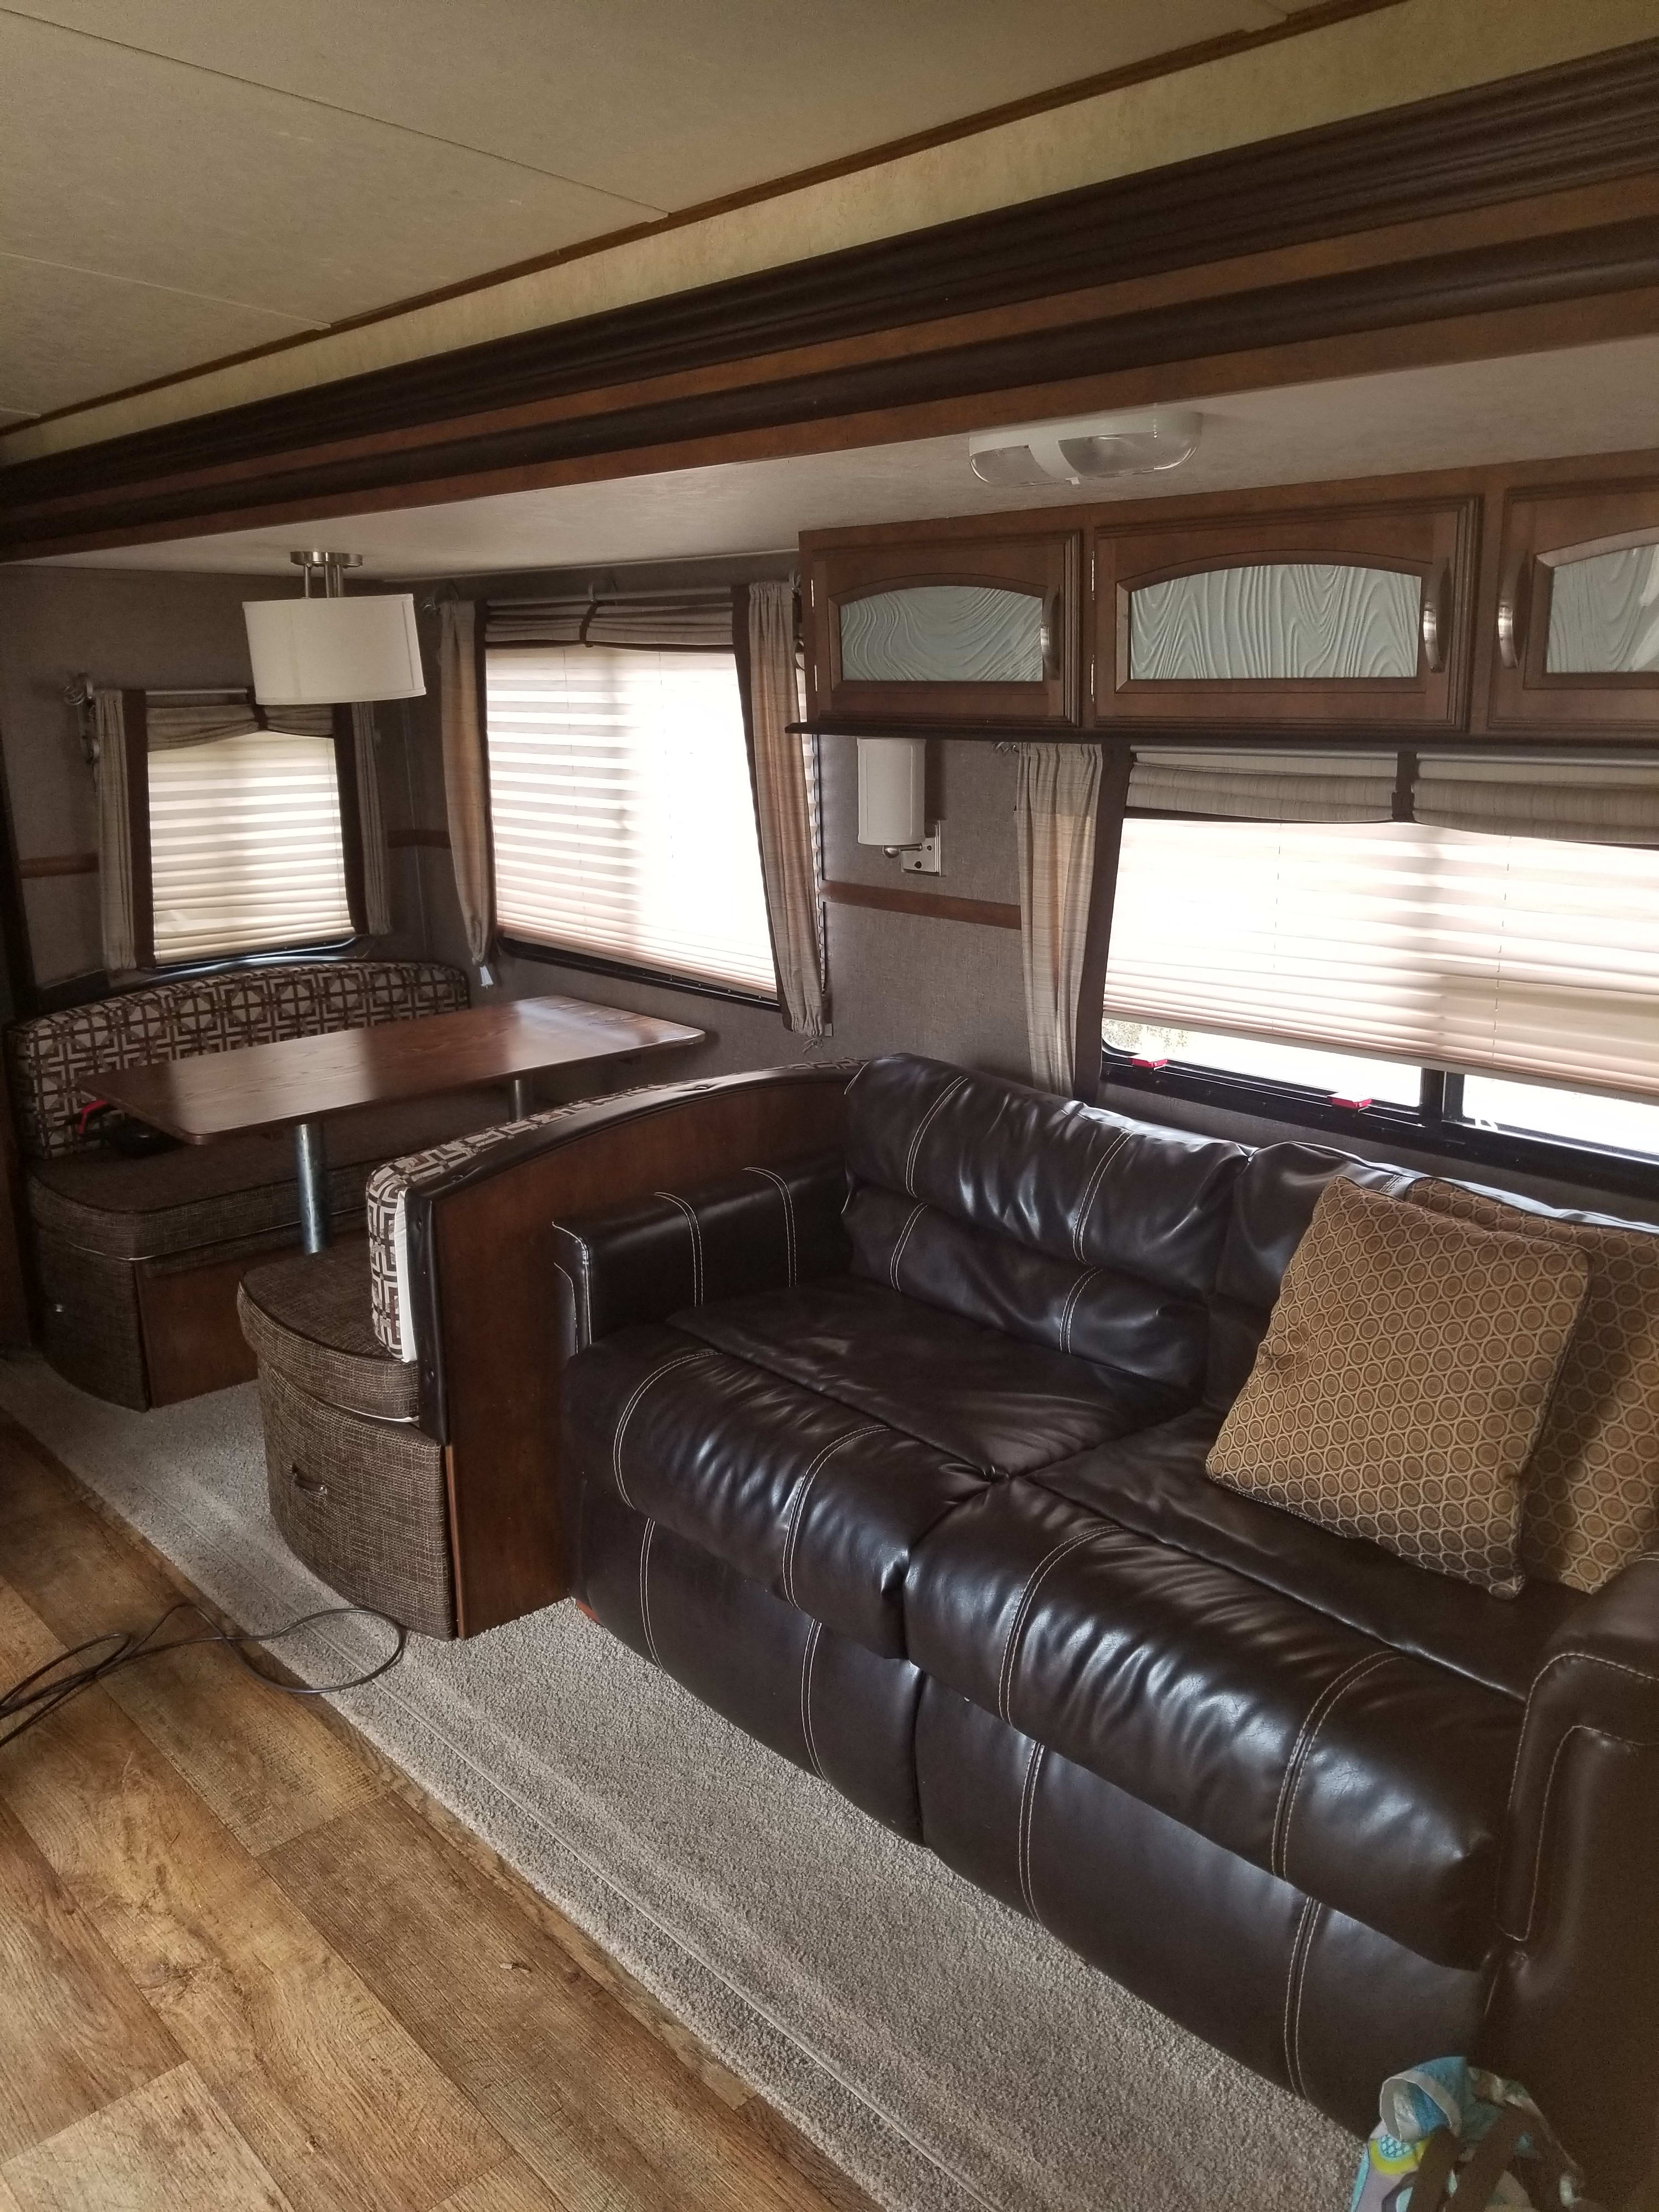 Leather full size pull out sofa bed and dining set to full size bed. Forest River Salem Hemisphere 2016